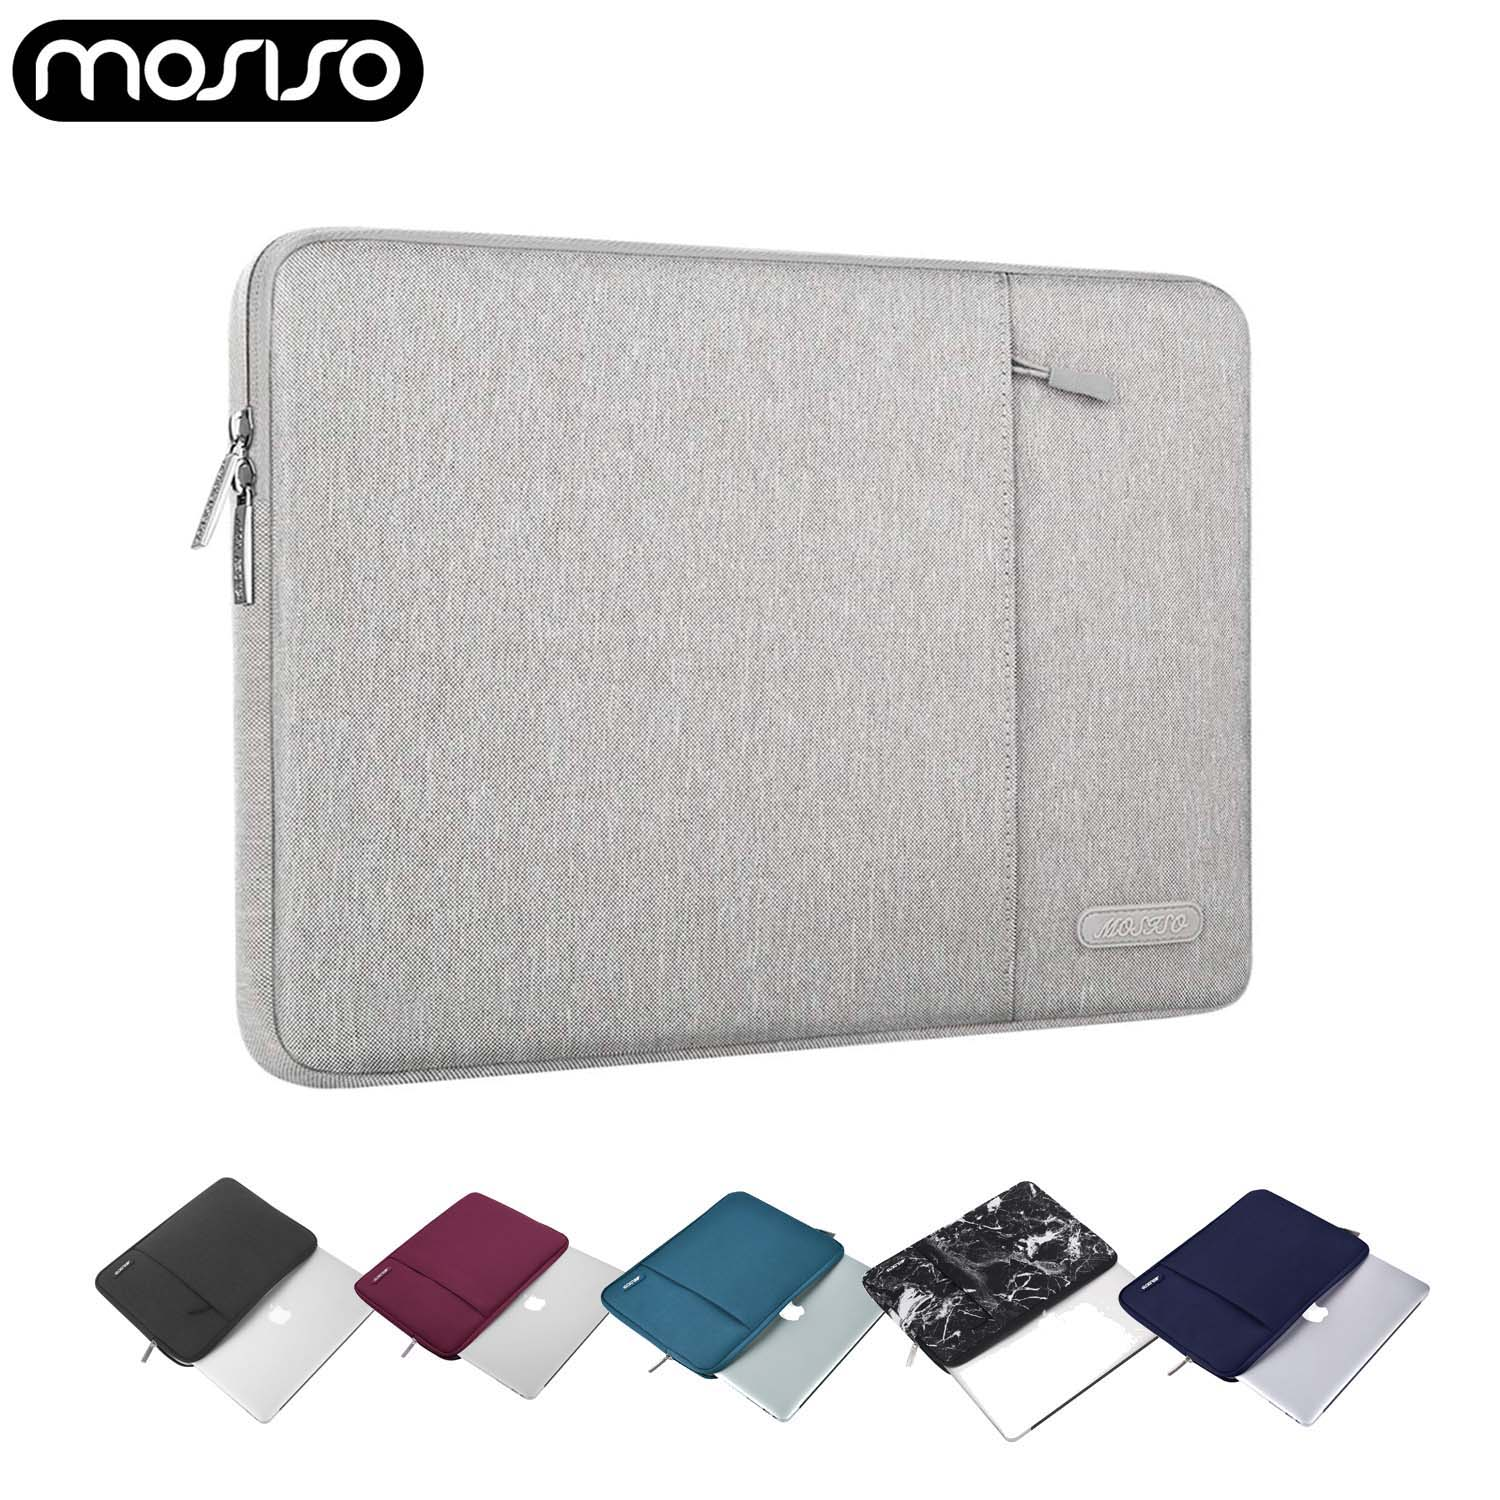 MOSISO 11 13 13.3 14 15inch Sleeve Bag Case For Macbook Air Pro 13 15 Touch Bar Laptop Sleeve Cover For Dell Asus Lenovo HP Acer